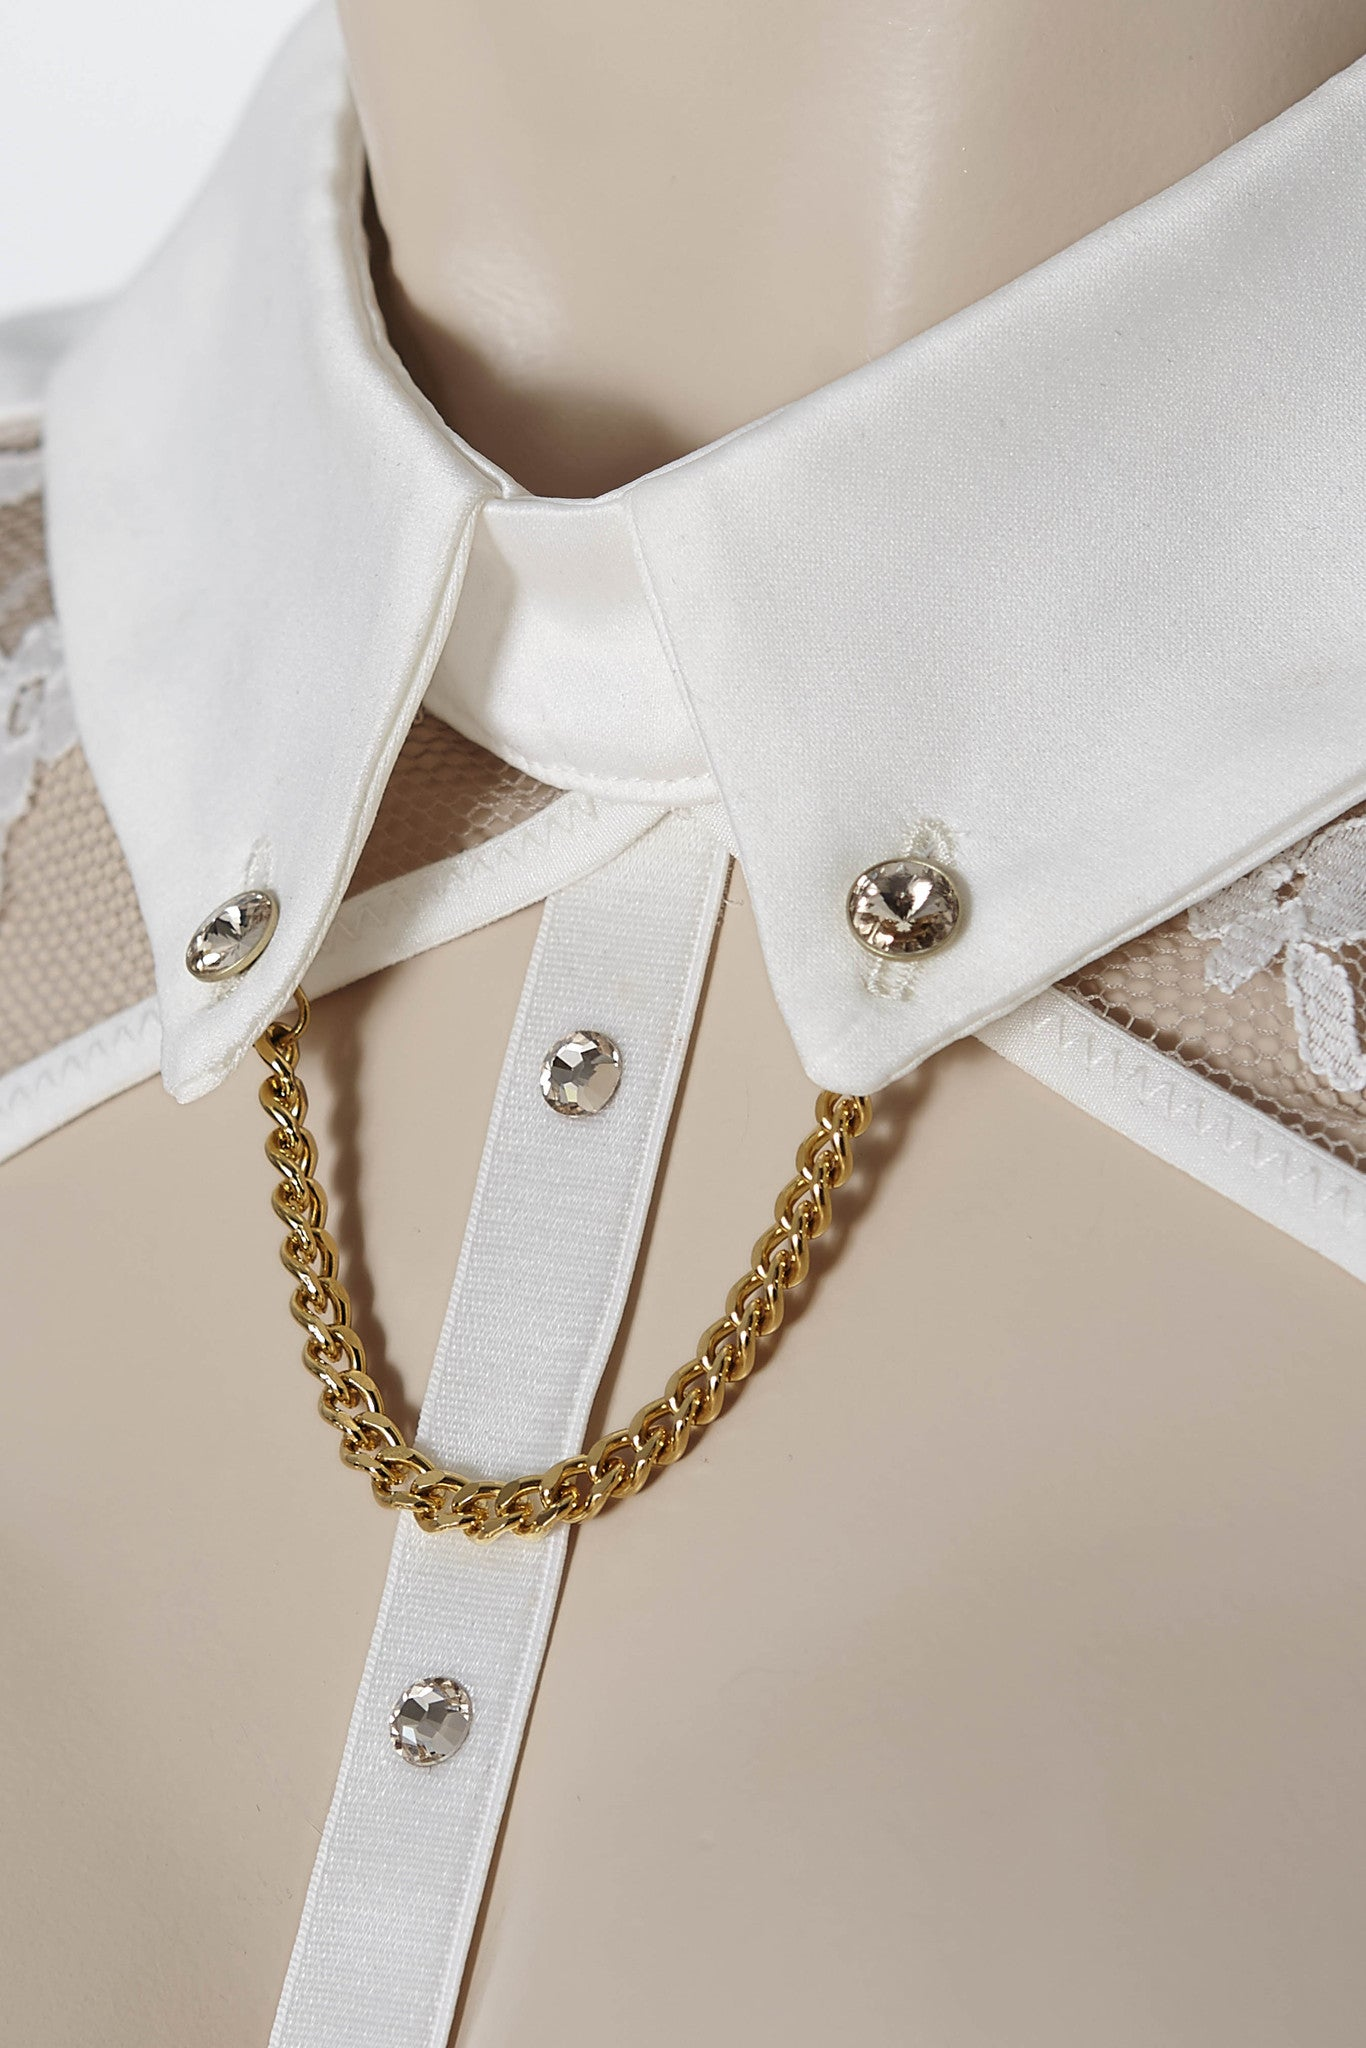 Nadya Collar & Thong (with detachable suspenders) by Tatu Couture. Close up on collar detail